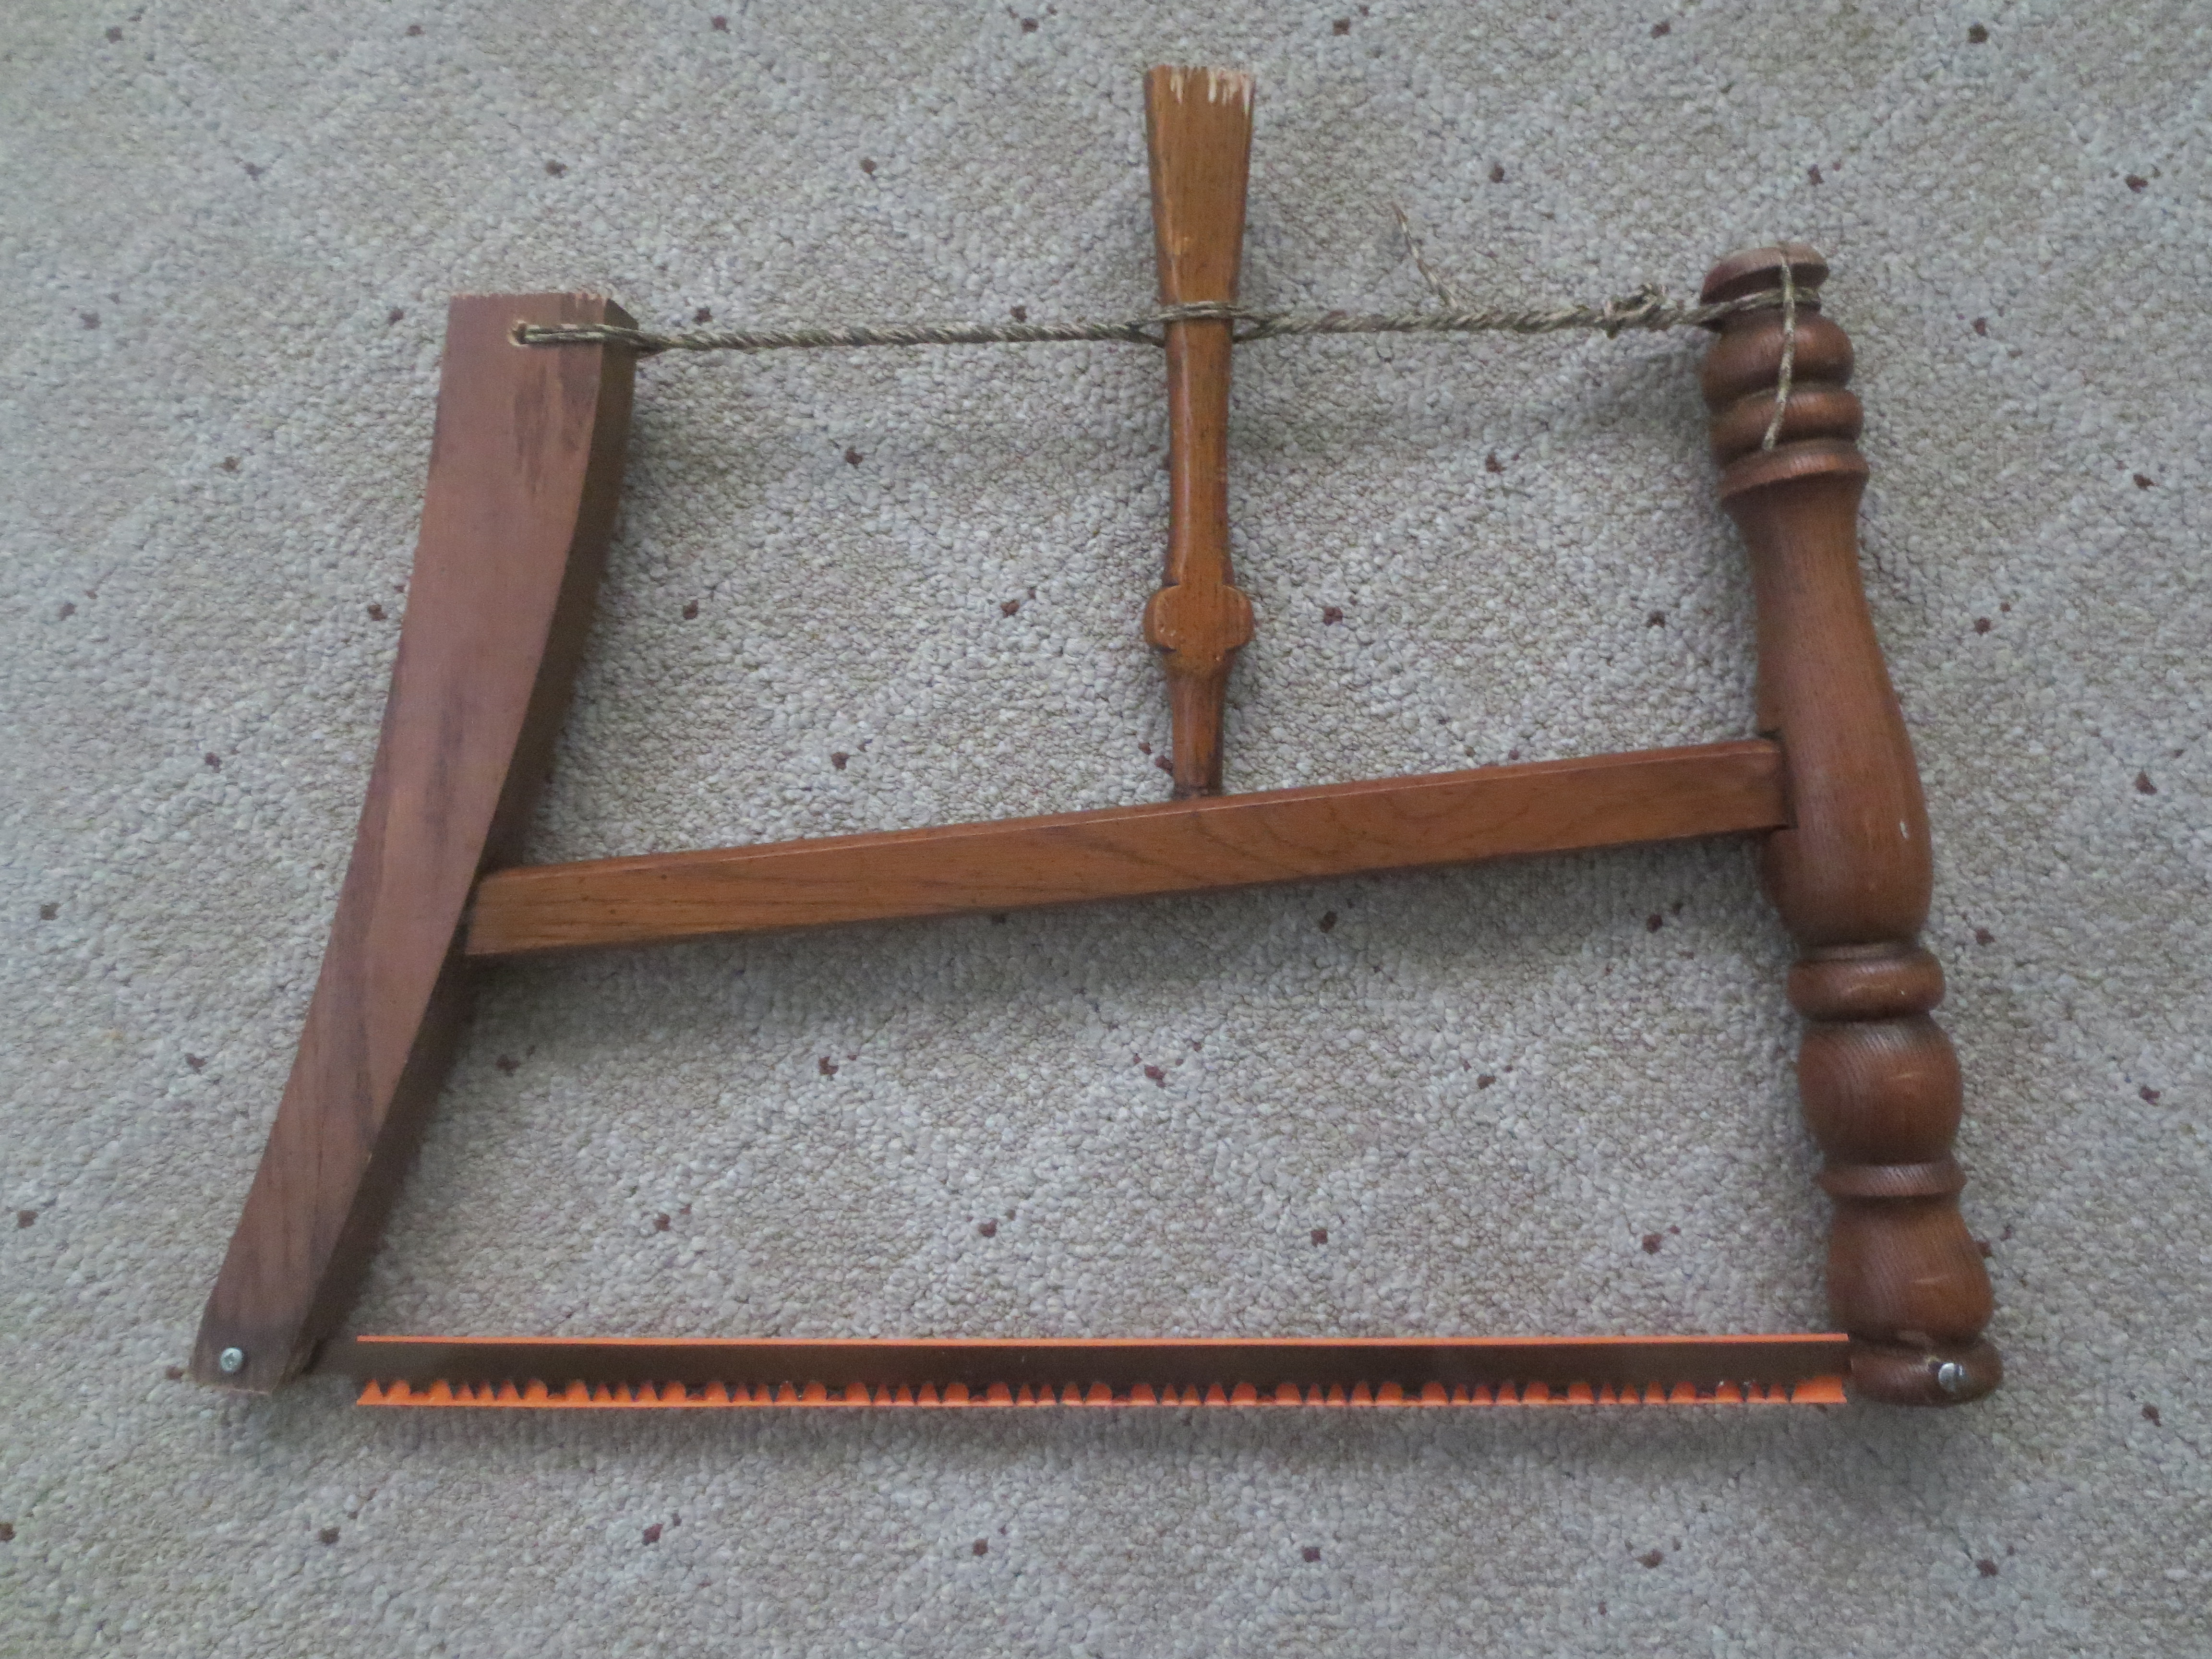 Picture of Emergency Bow Saw Made With a Swiss Army Knife From a Discarded Chair